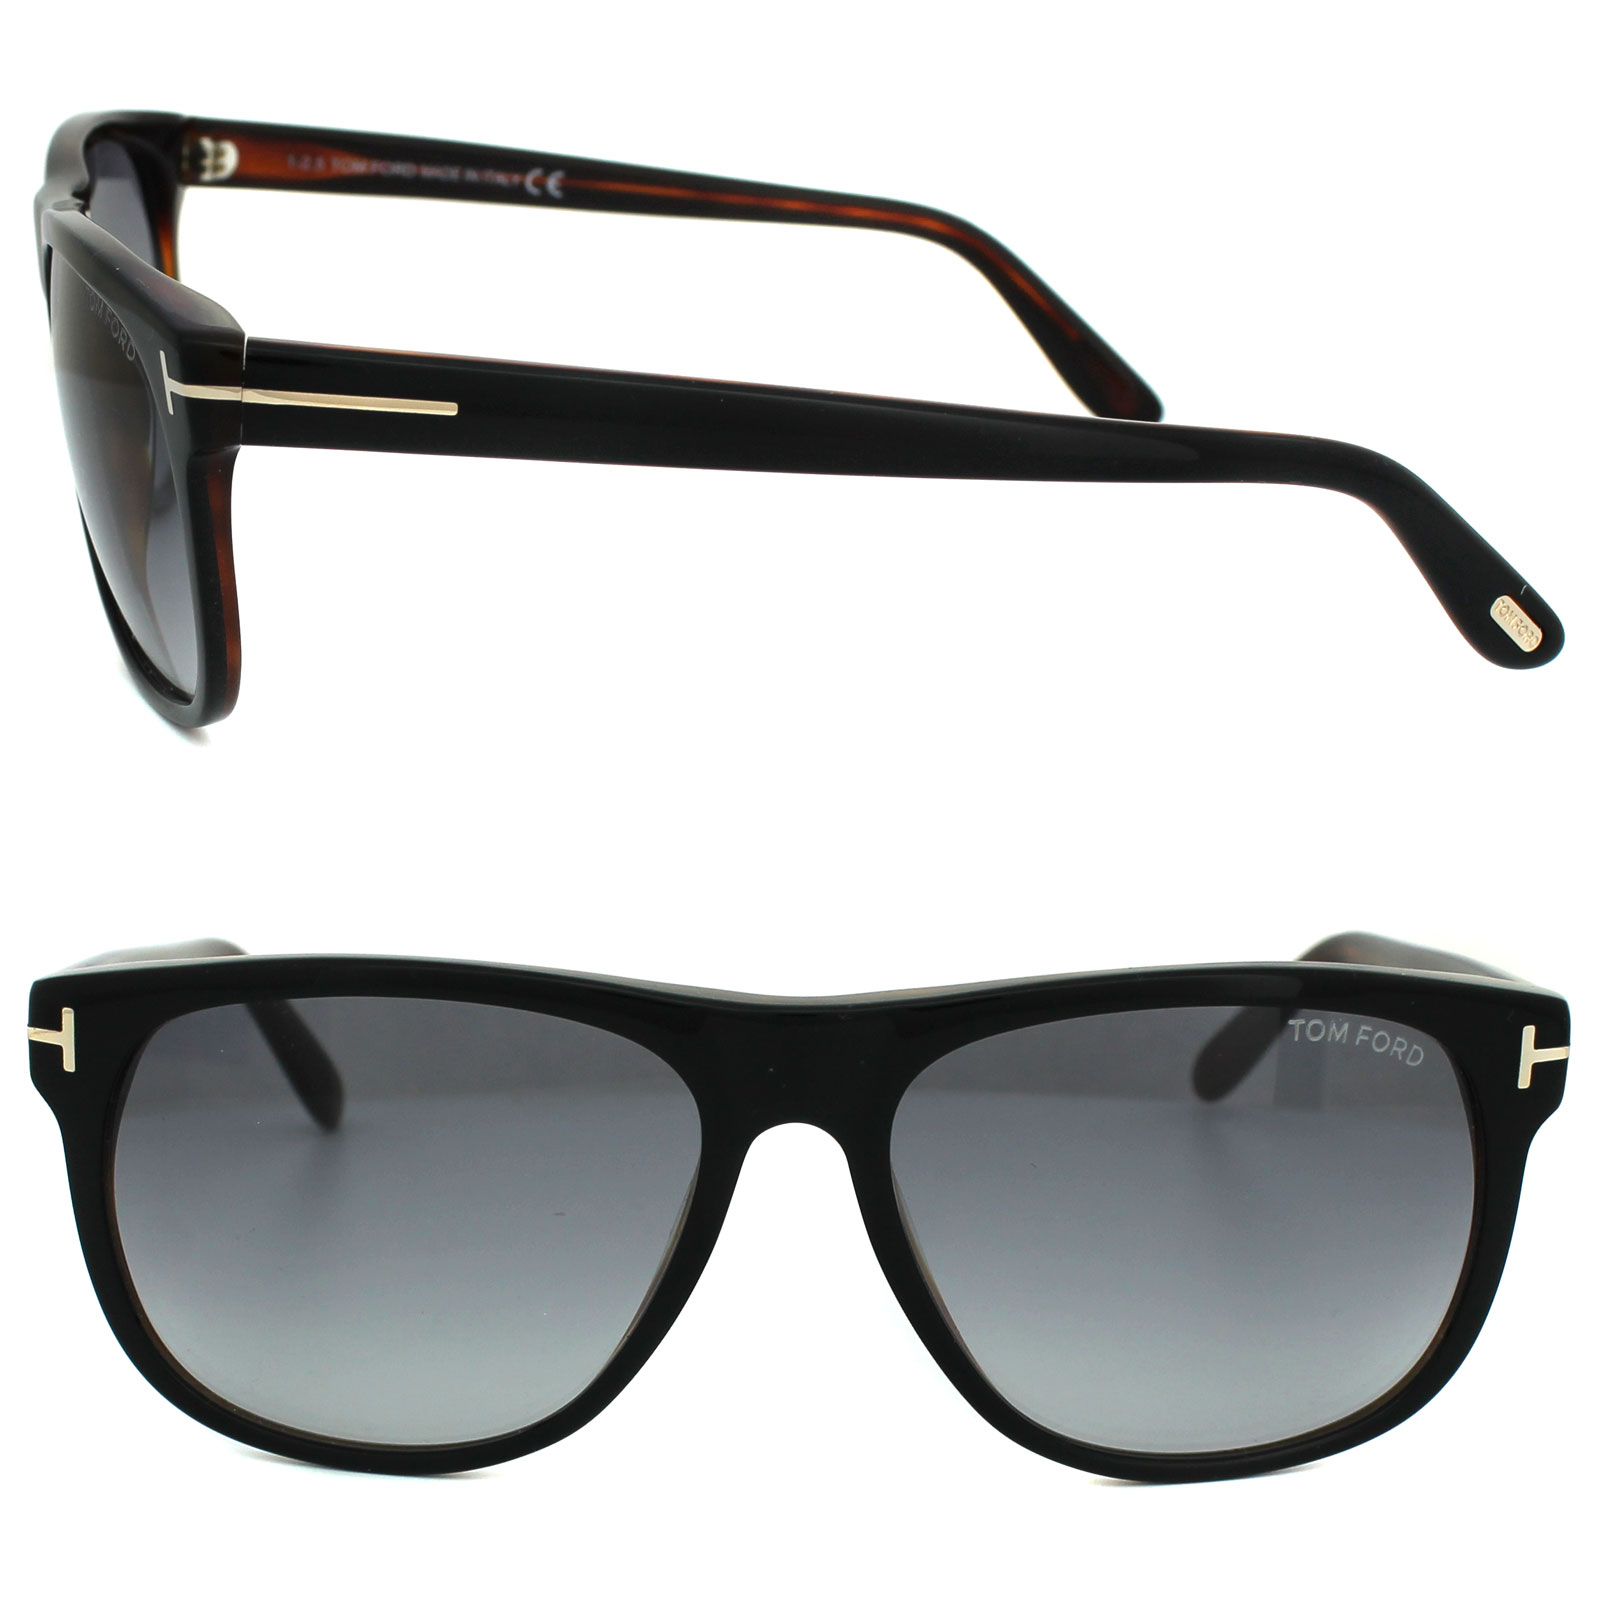 ba77327bdca Sentinel Tom Ford Sunglasses 0236 Olivier 05B Black   Brown Smoke Grey  Gradient